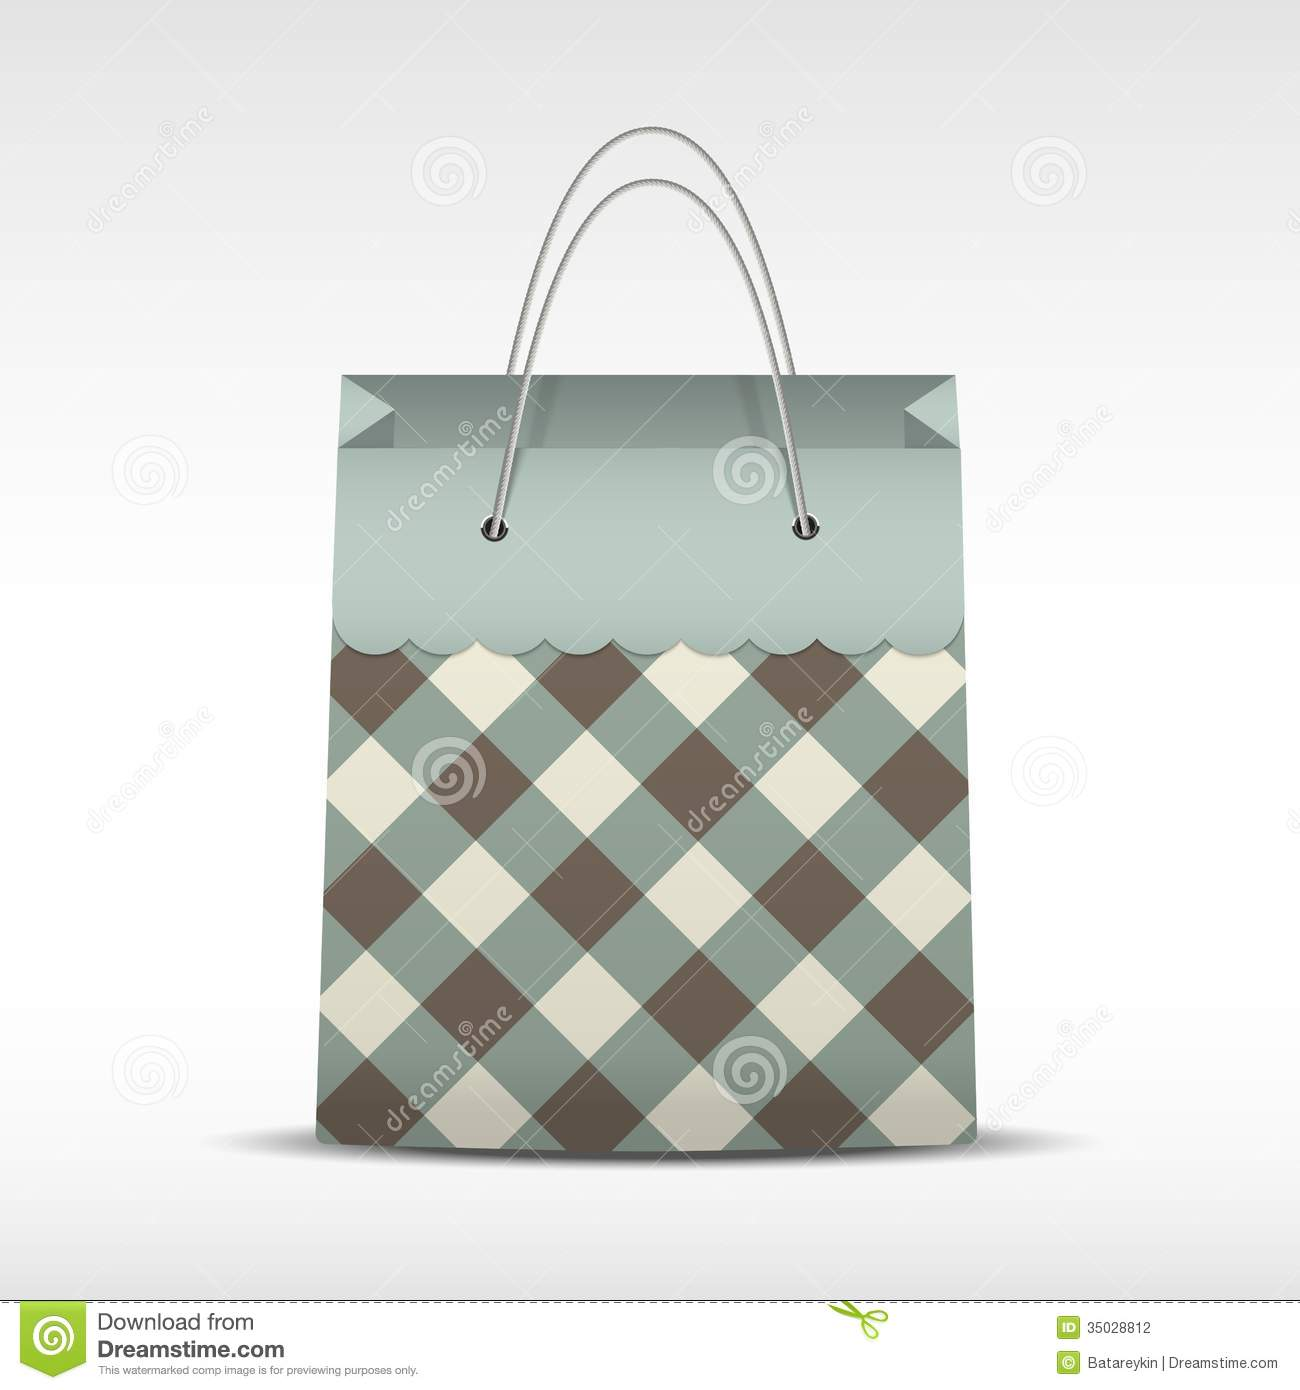 Vintage Shopping Bag In Check Texture Stock Photography ...